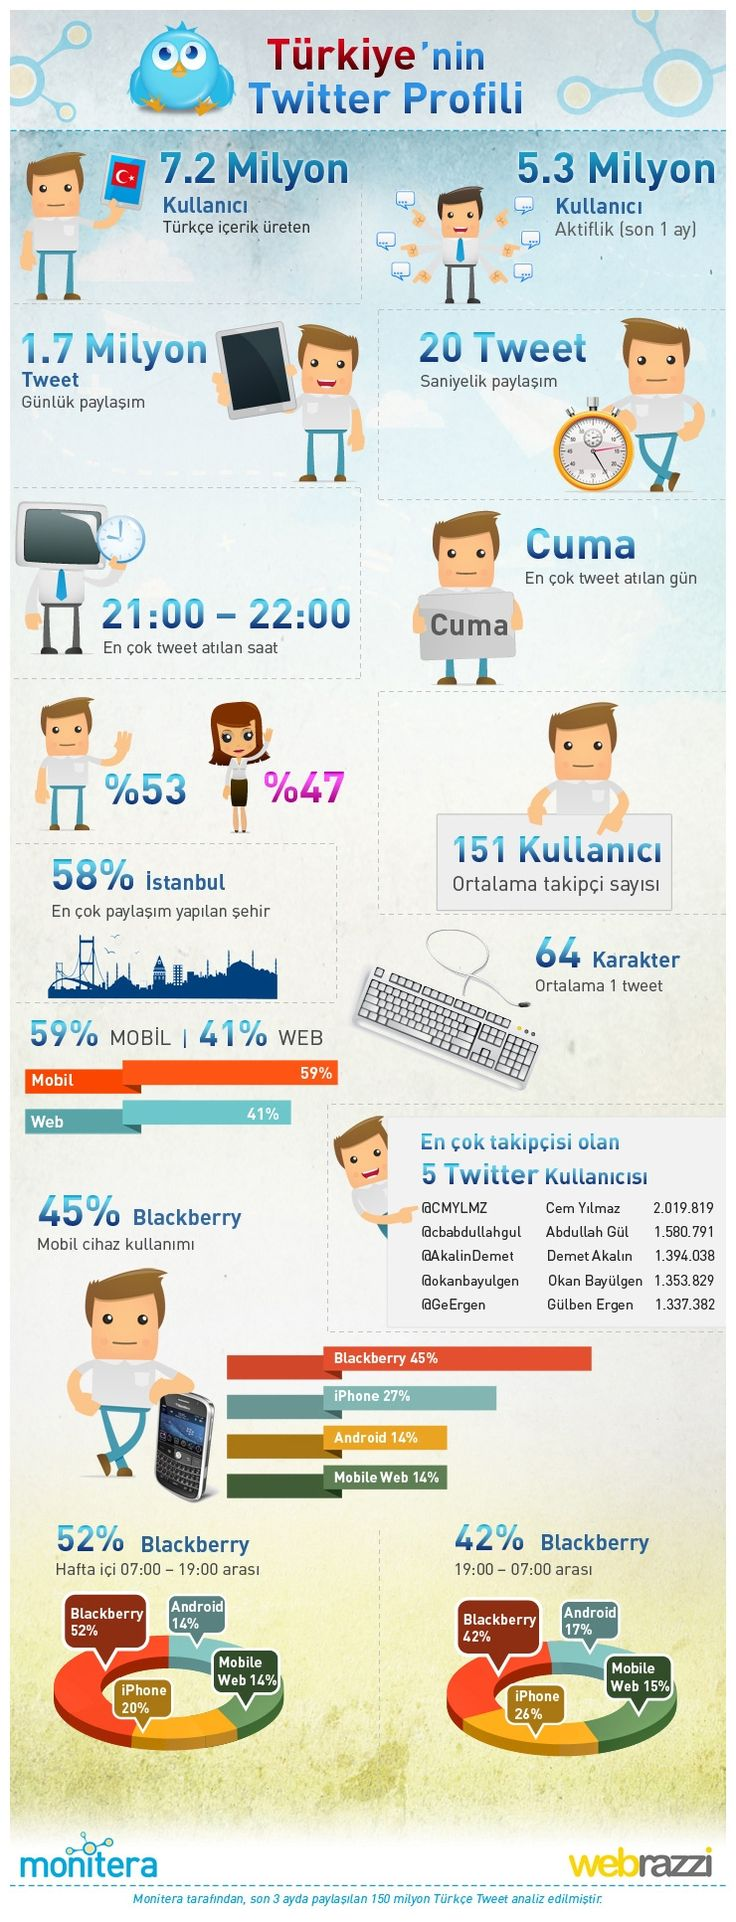 Turkey Twitter Usage Statistics